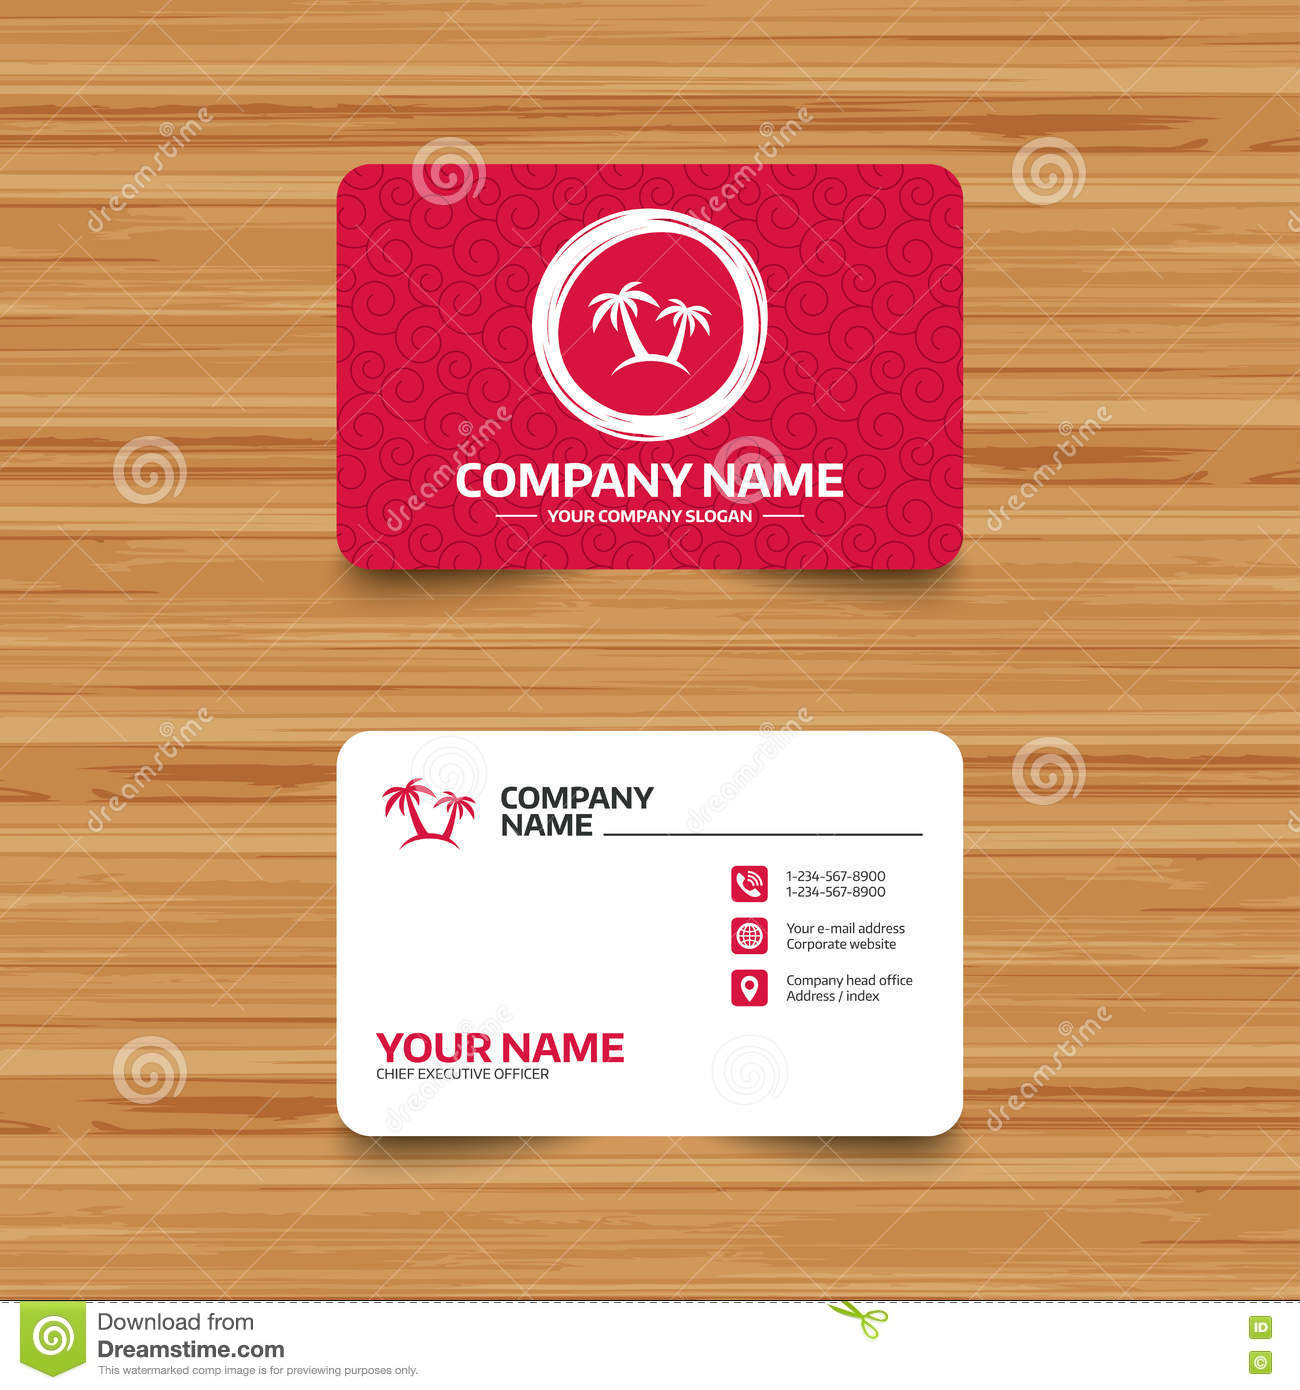 Palm tree sign icon travel trip symbol stock vector illustration business card template with texture palm tree sign icon travel trip symbol phone web and location icons visiting card vector colourmoves